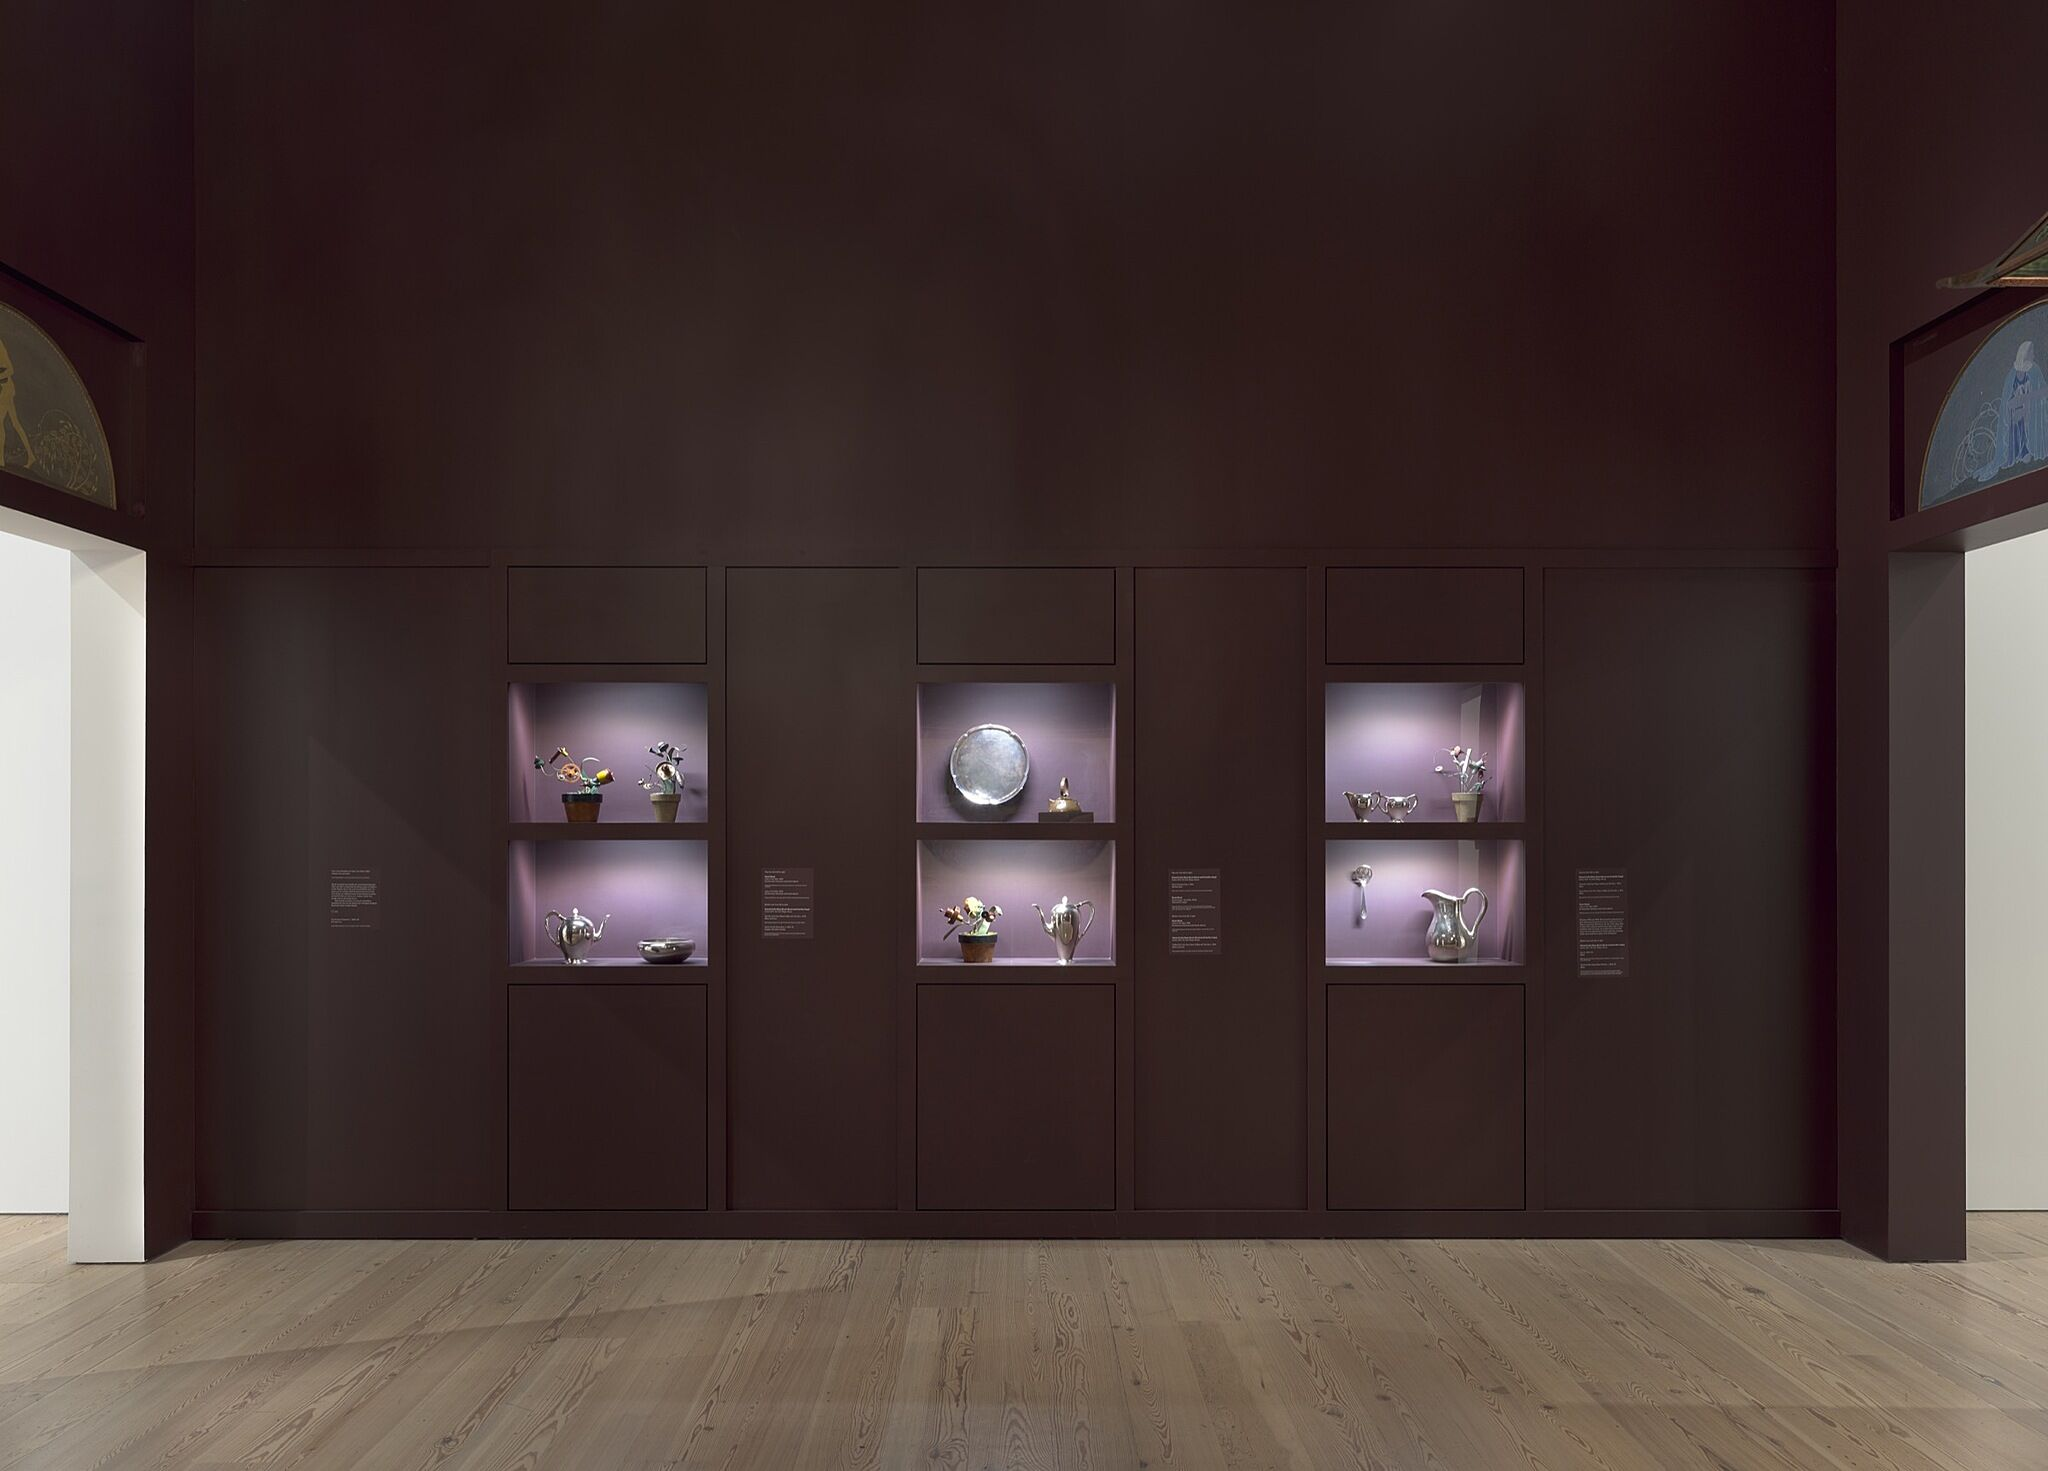 A series of dishes and silverware in display cases on a gallery wall.